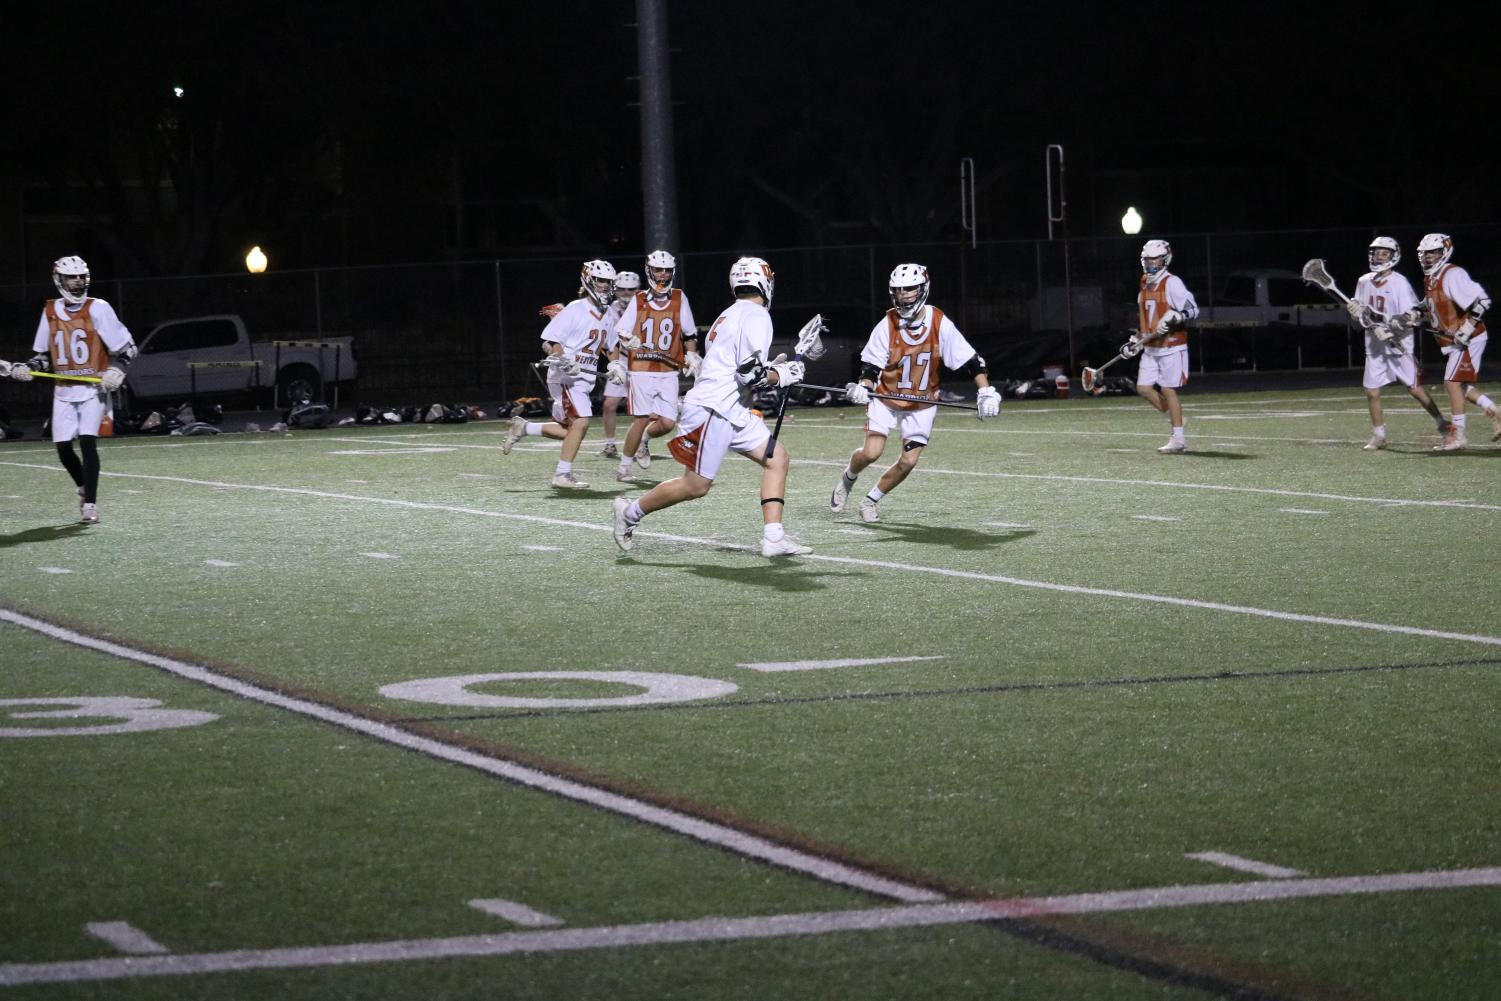 The+Westwood+Varsity+lacrosse+team+warms+up+before+their+game.